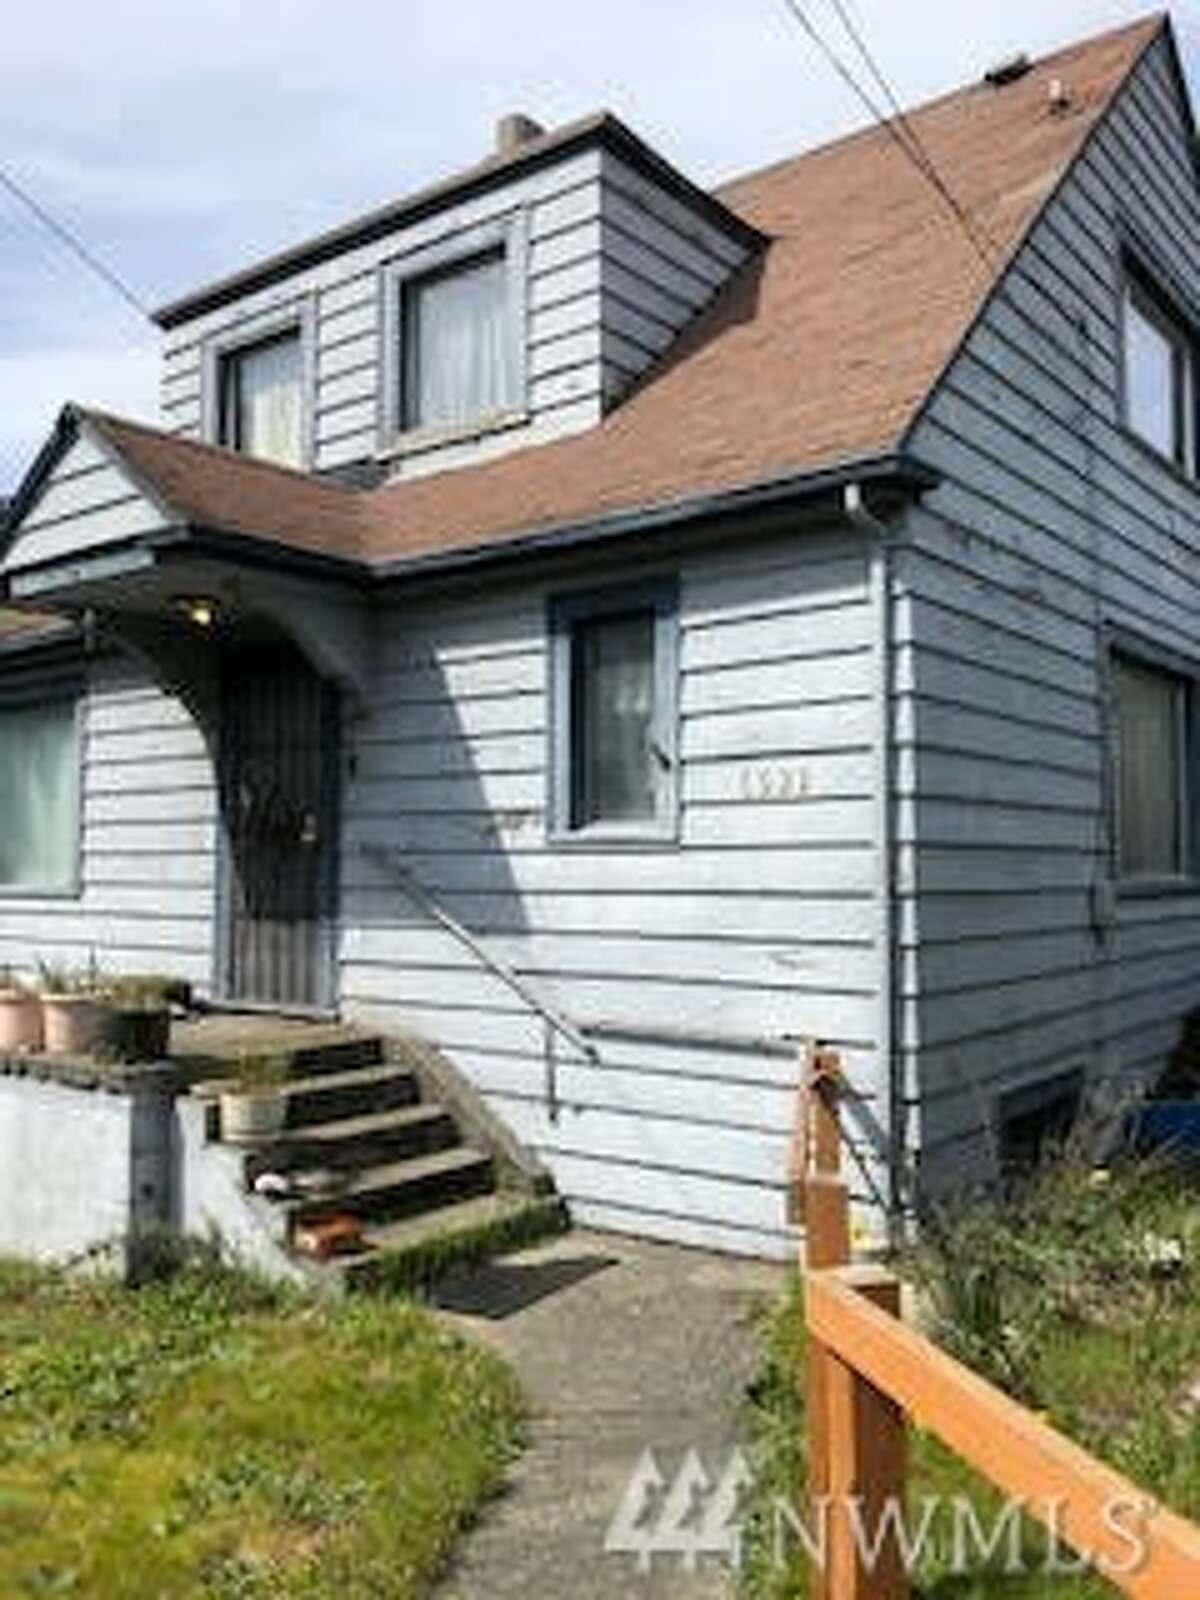 This house for sale in Seattle's Ballard neighborhood is listed as a possible tear-down, with